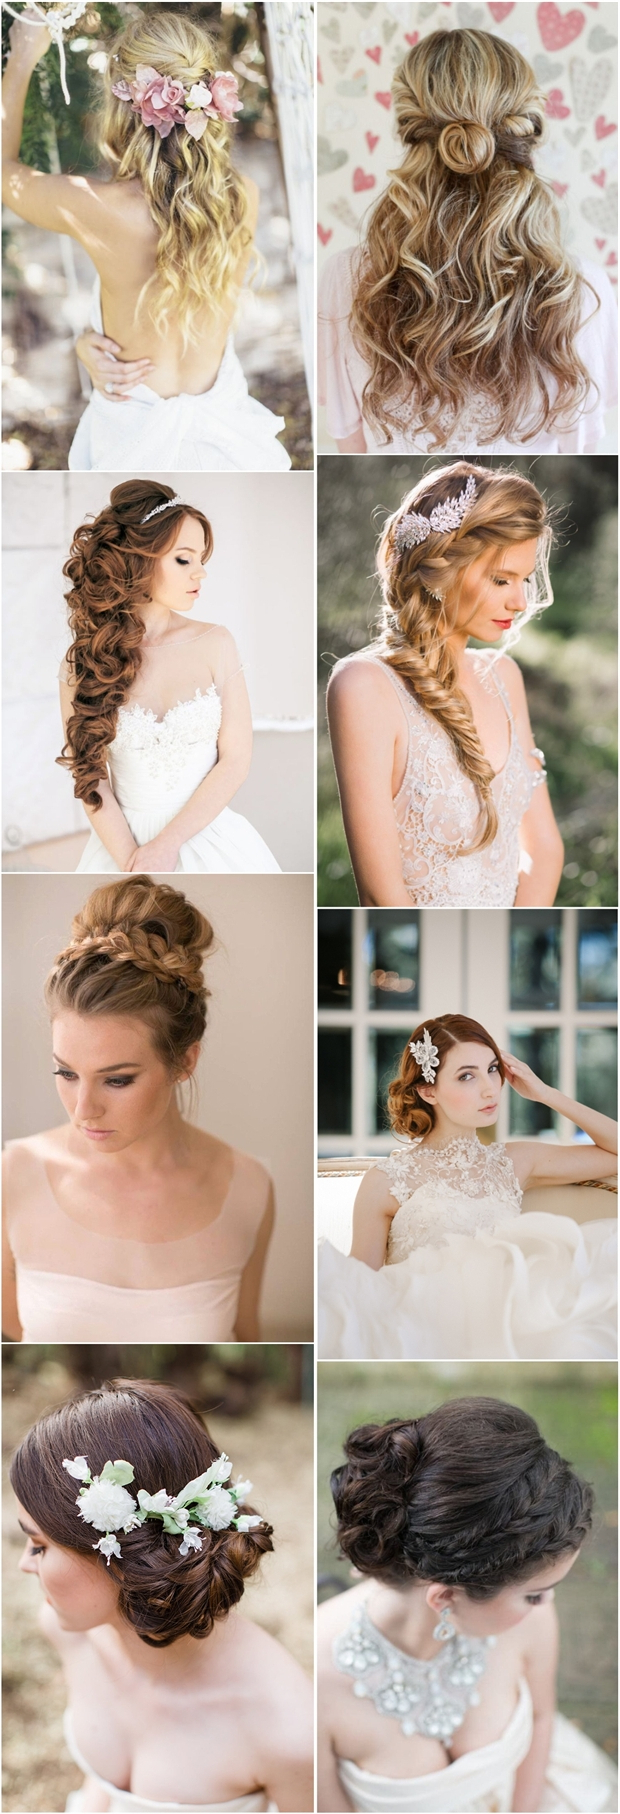 20 Fabulous Wedding Hairstyles For Every Bride (View 16 of 20)